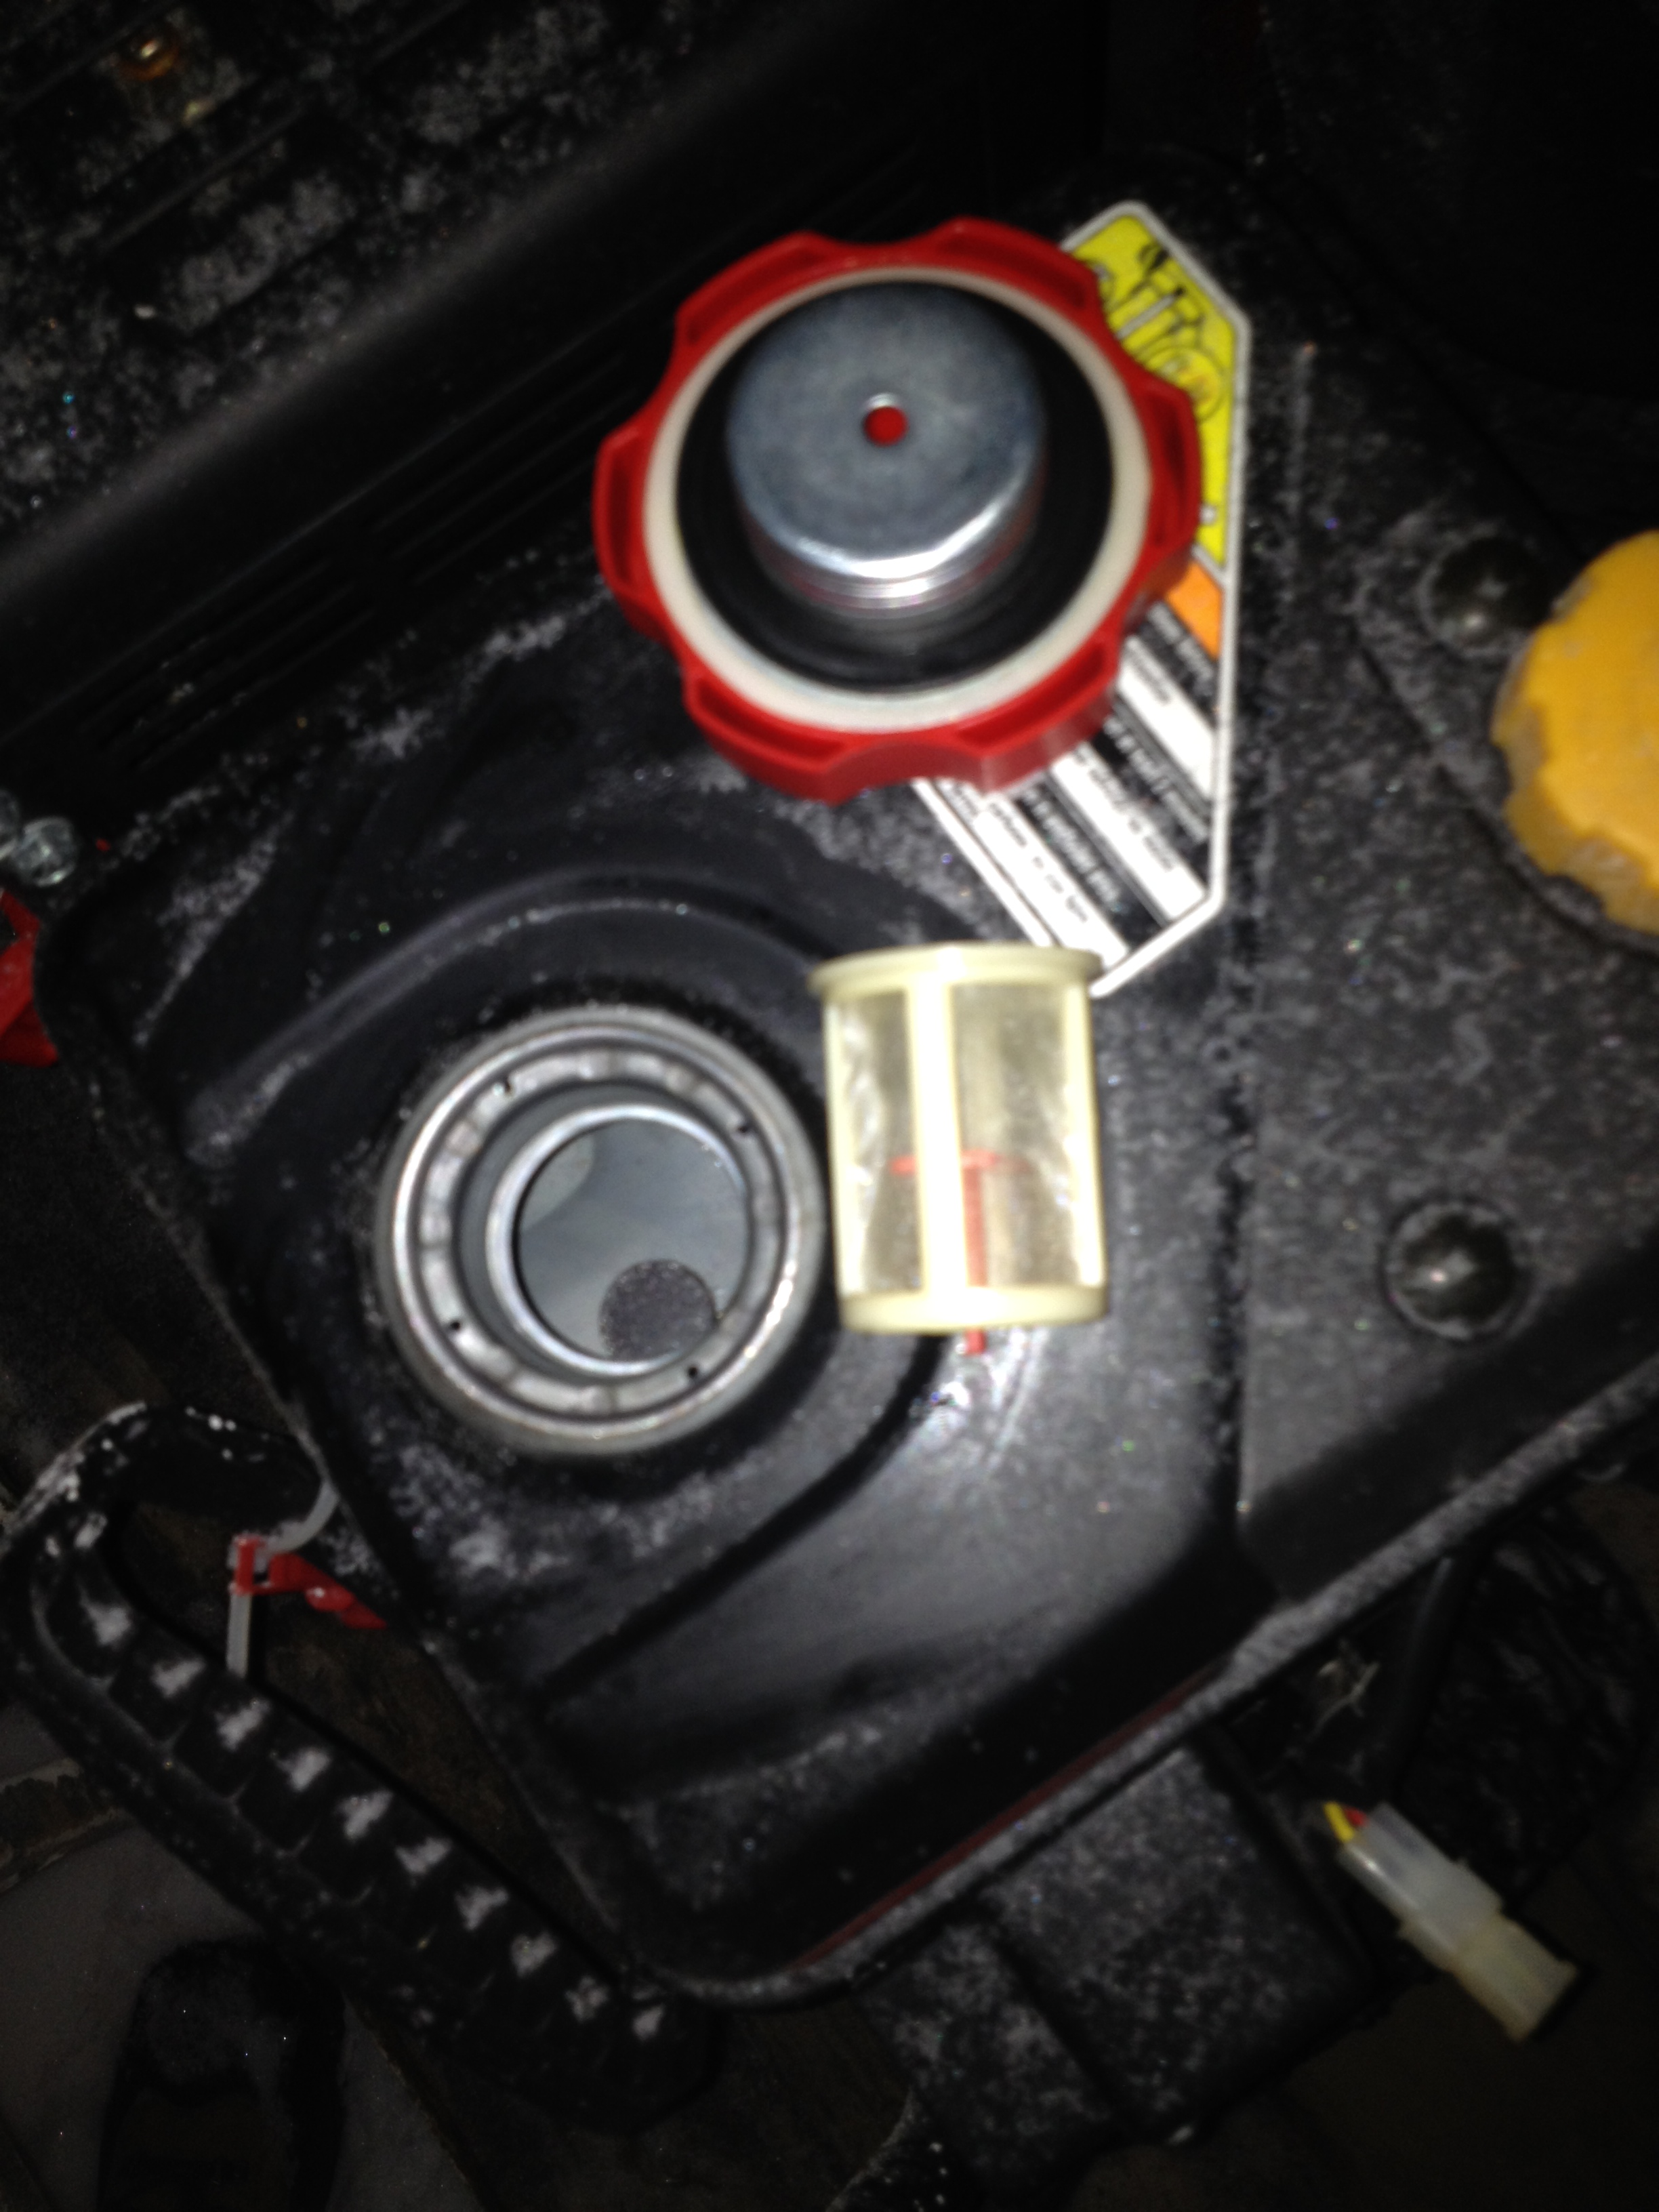 Gas cap leaking after engine starts